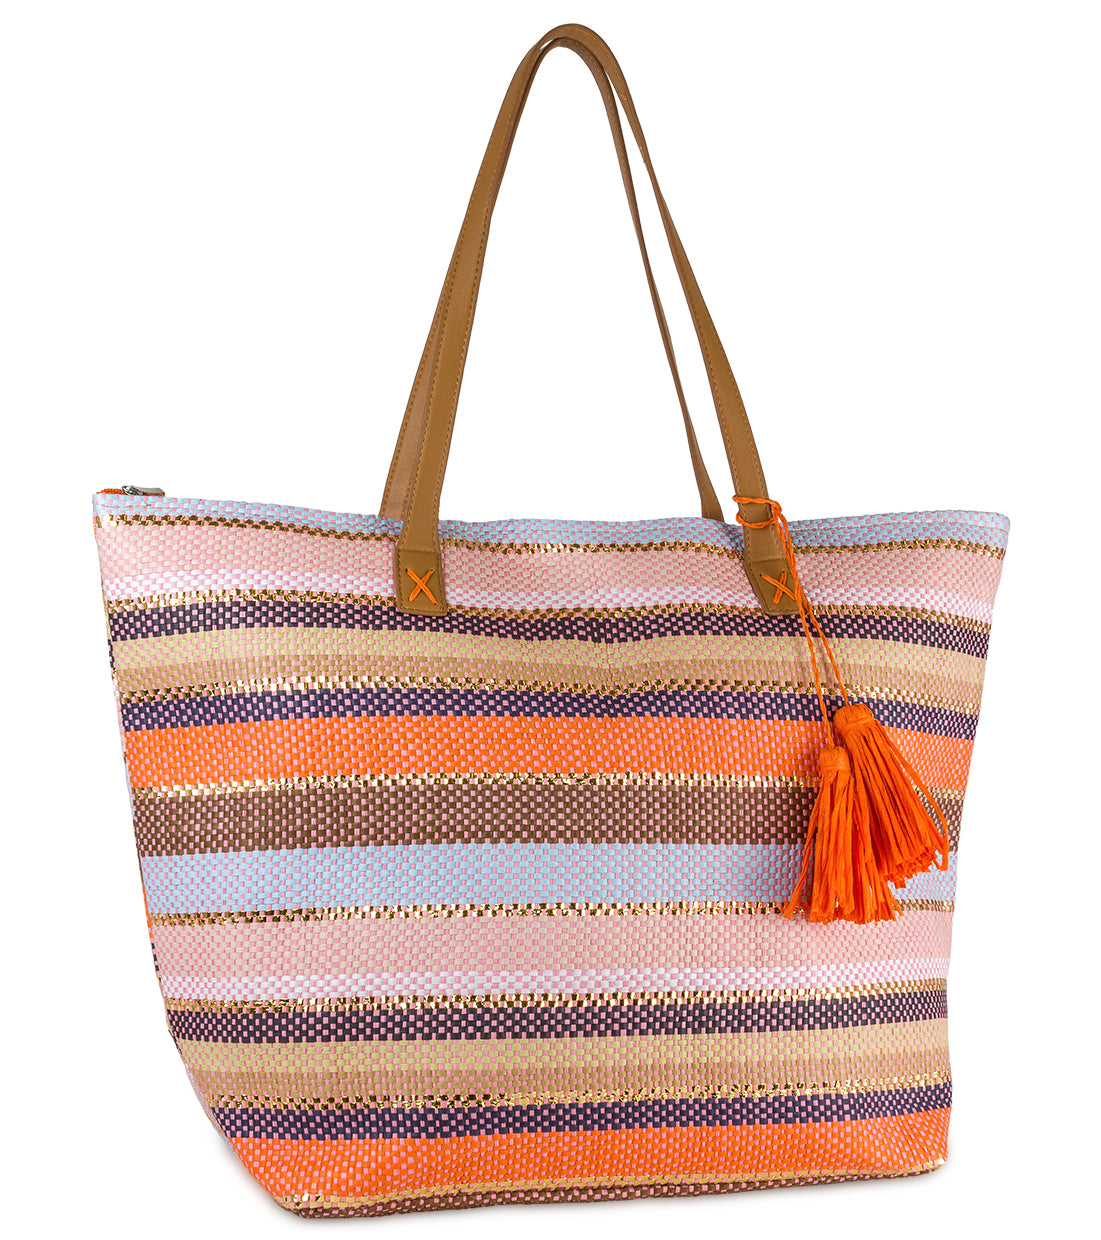 Two Tone Striped Tote - Just Jamie